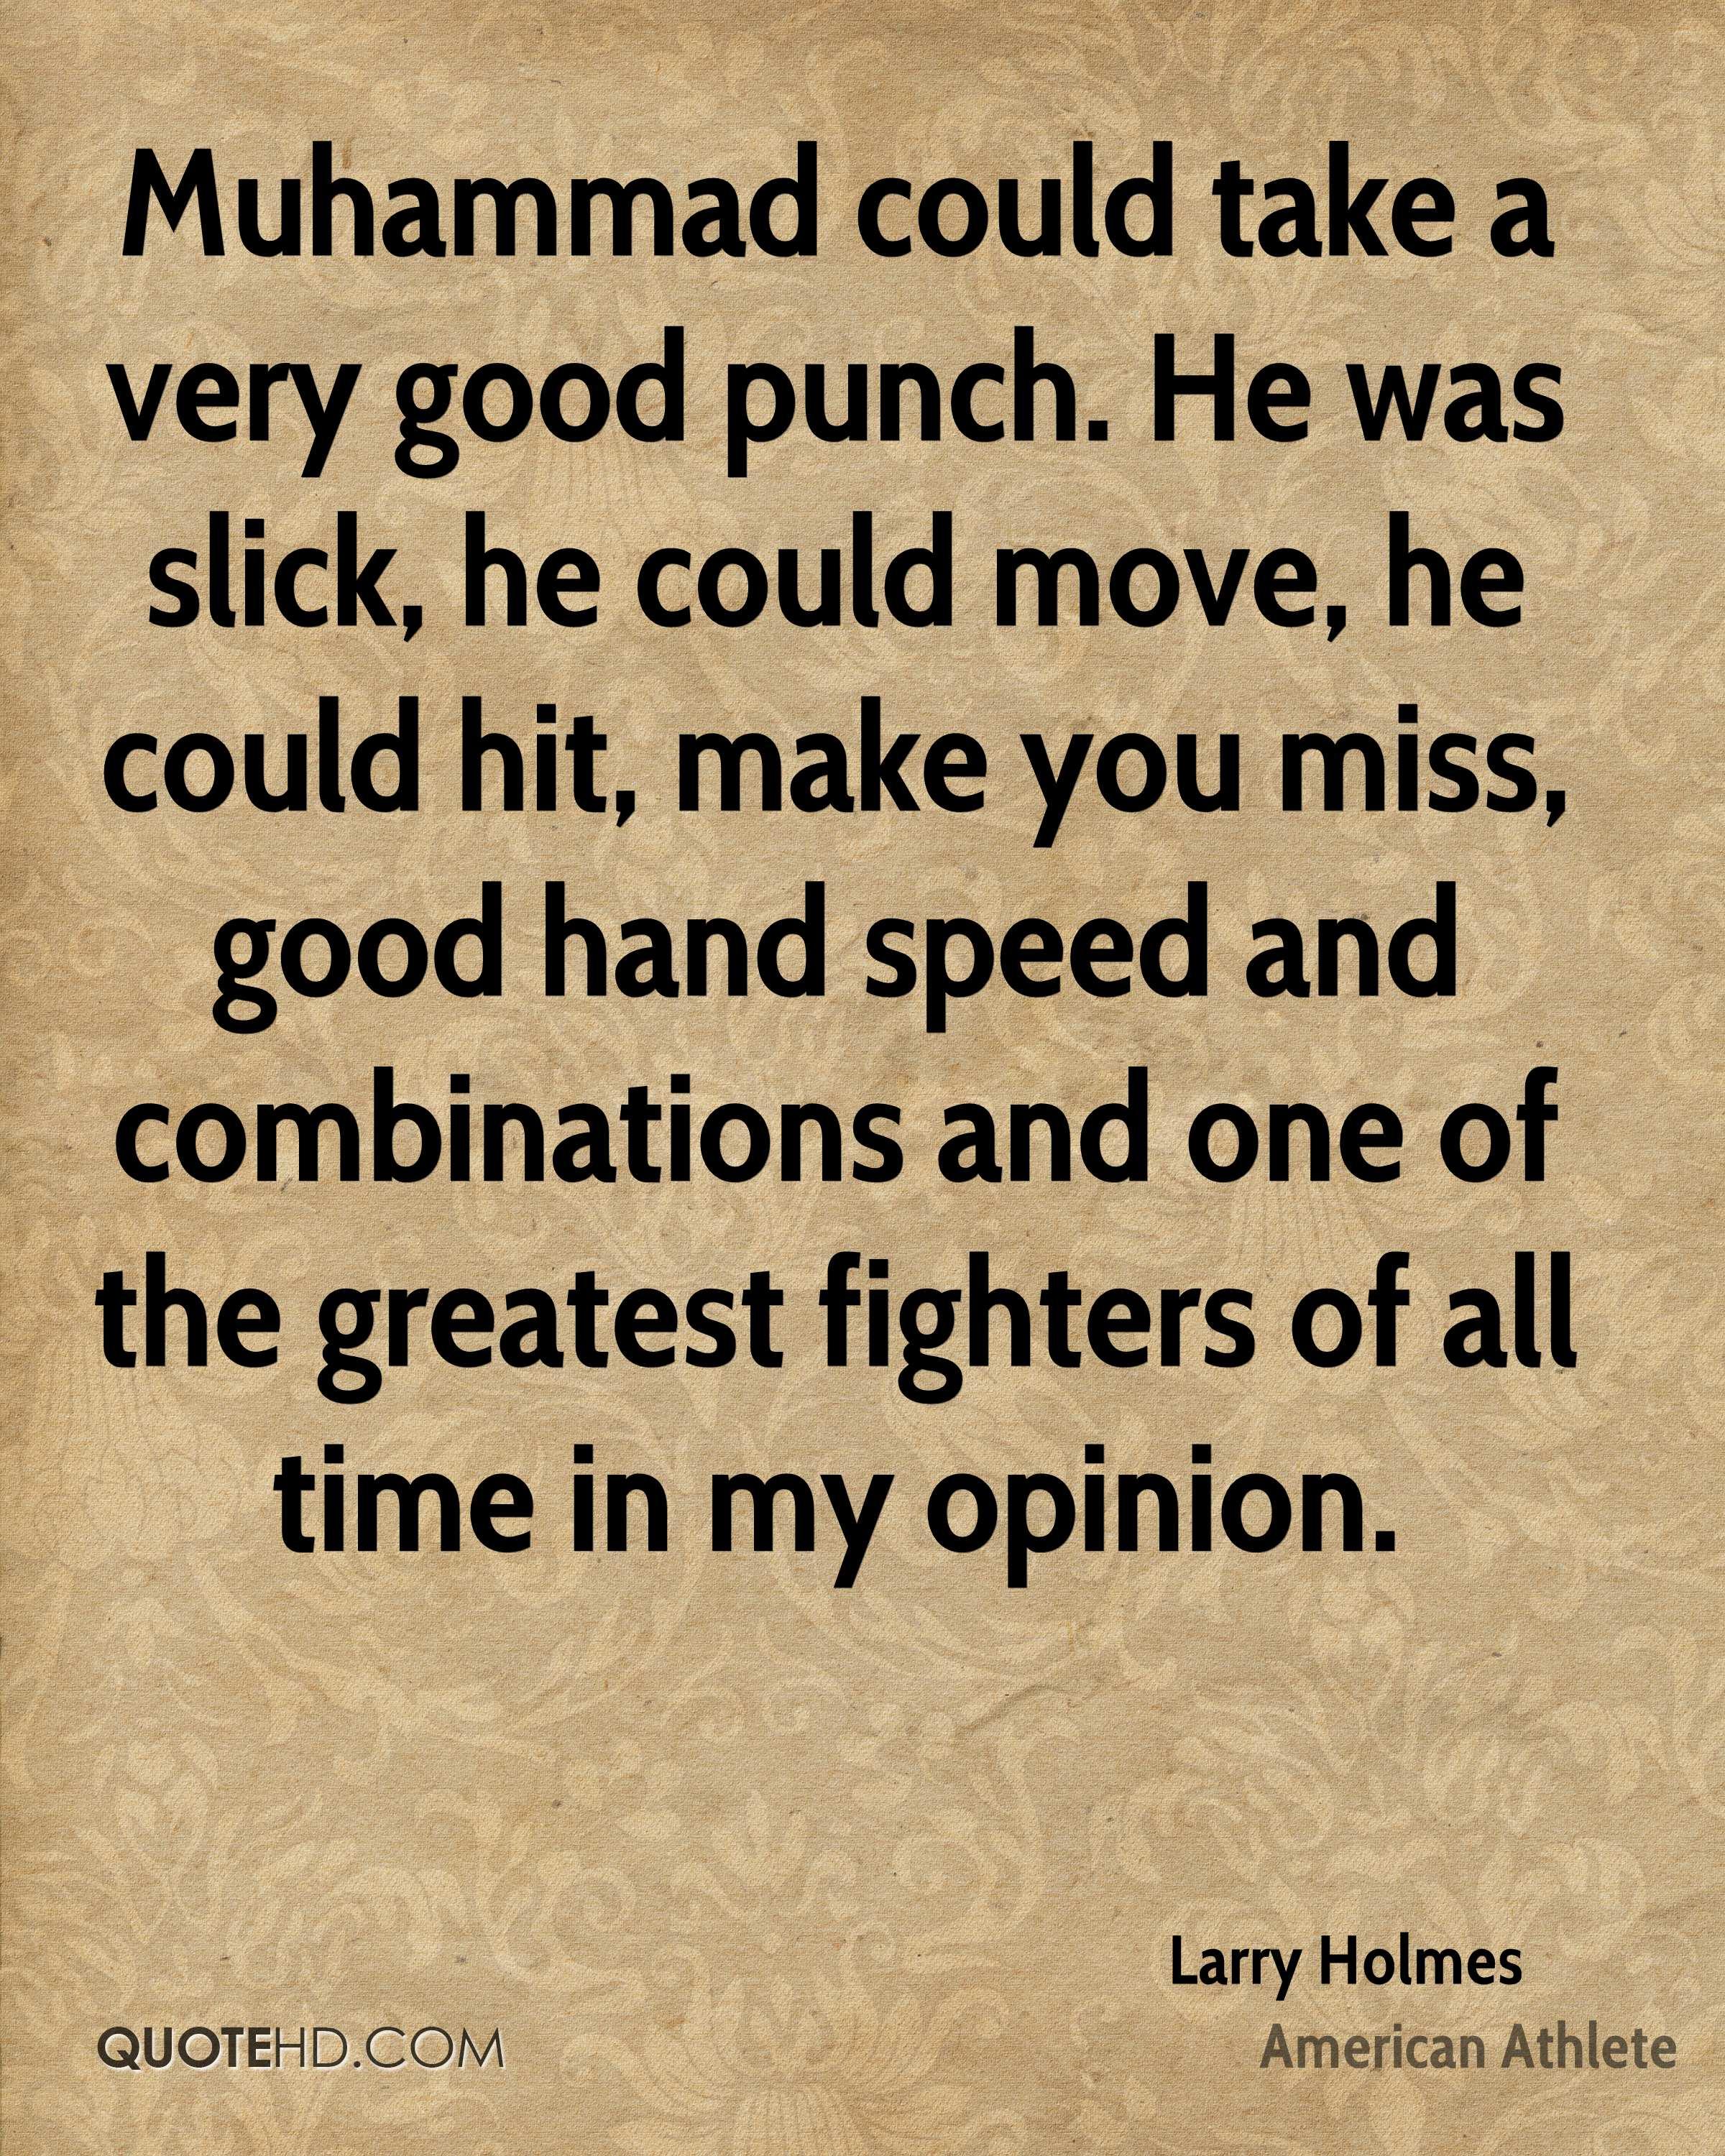 Muhammad could take a very good punch. He was slick, he could move, he could hit, make you miss, good hand speed and combinations and one of the greatest fighters of all time in my opinion.